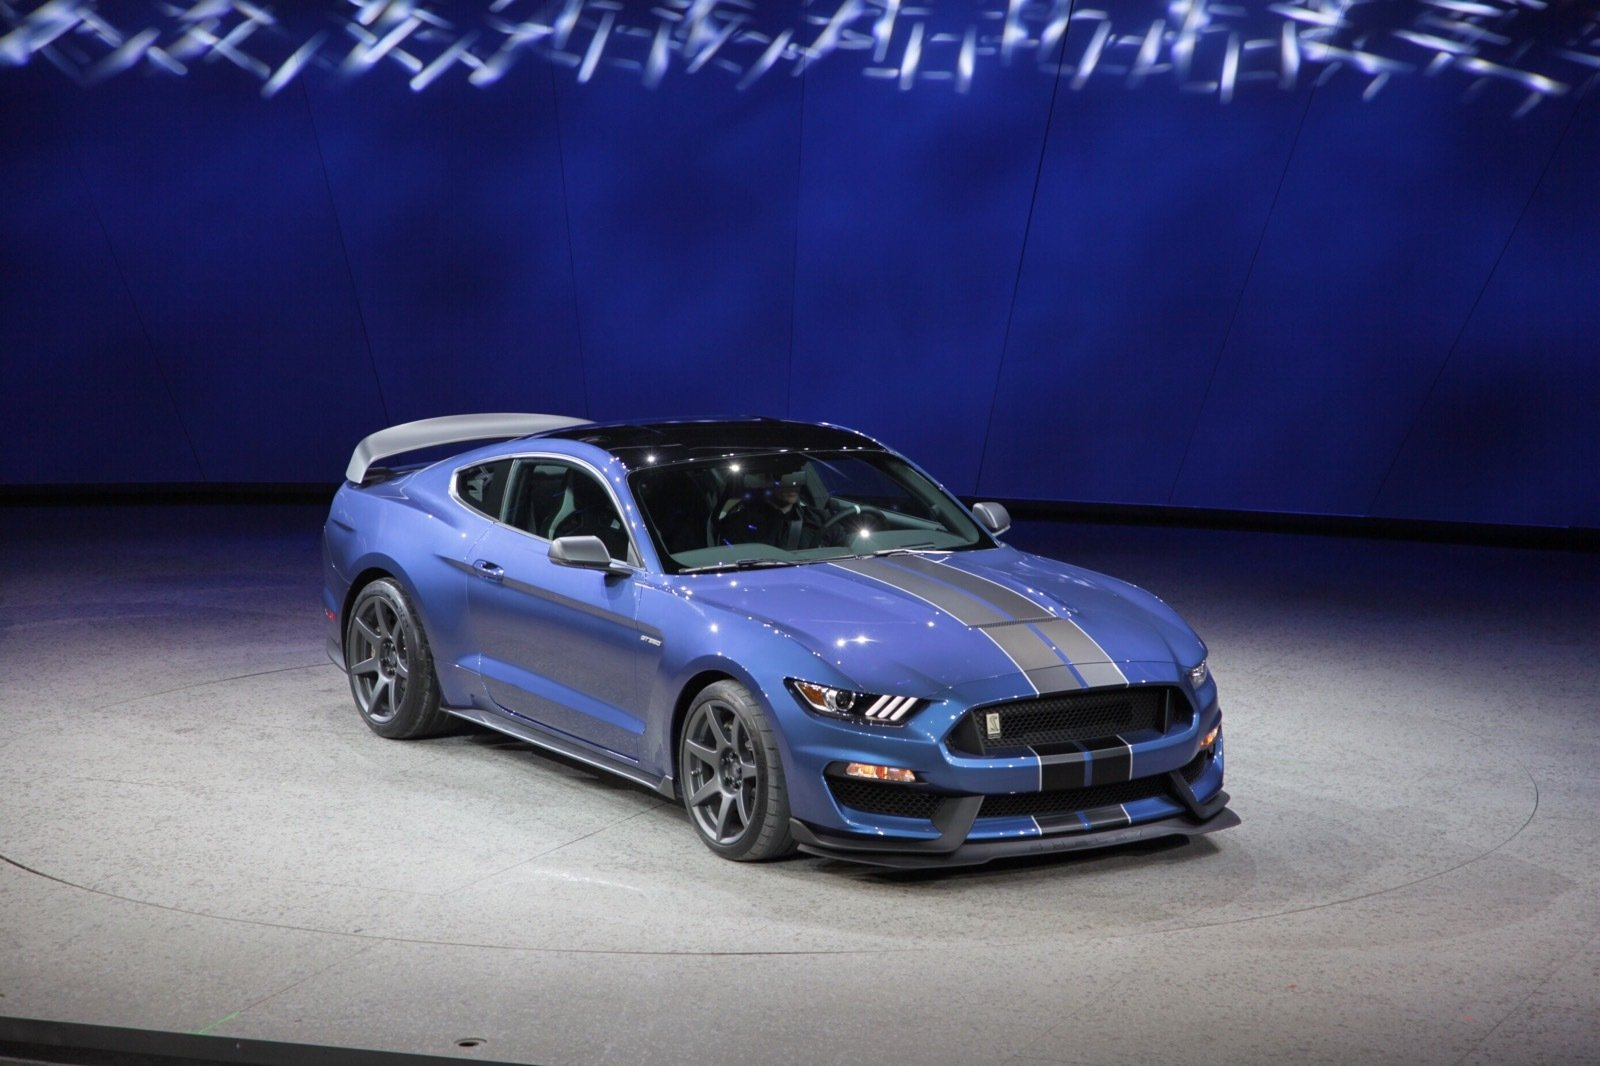 2016 ford shelby gt350r mustang picture 610326 car. Black Bedroom Furniture Sets. Home Design Ideas